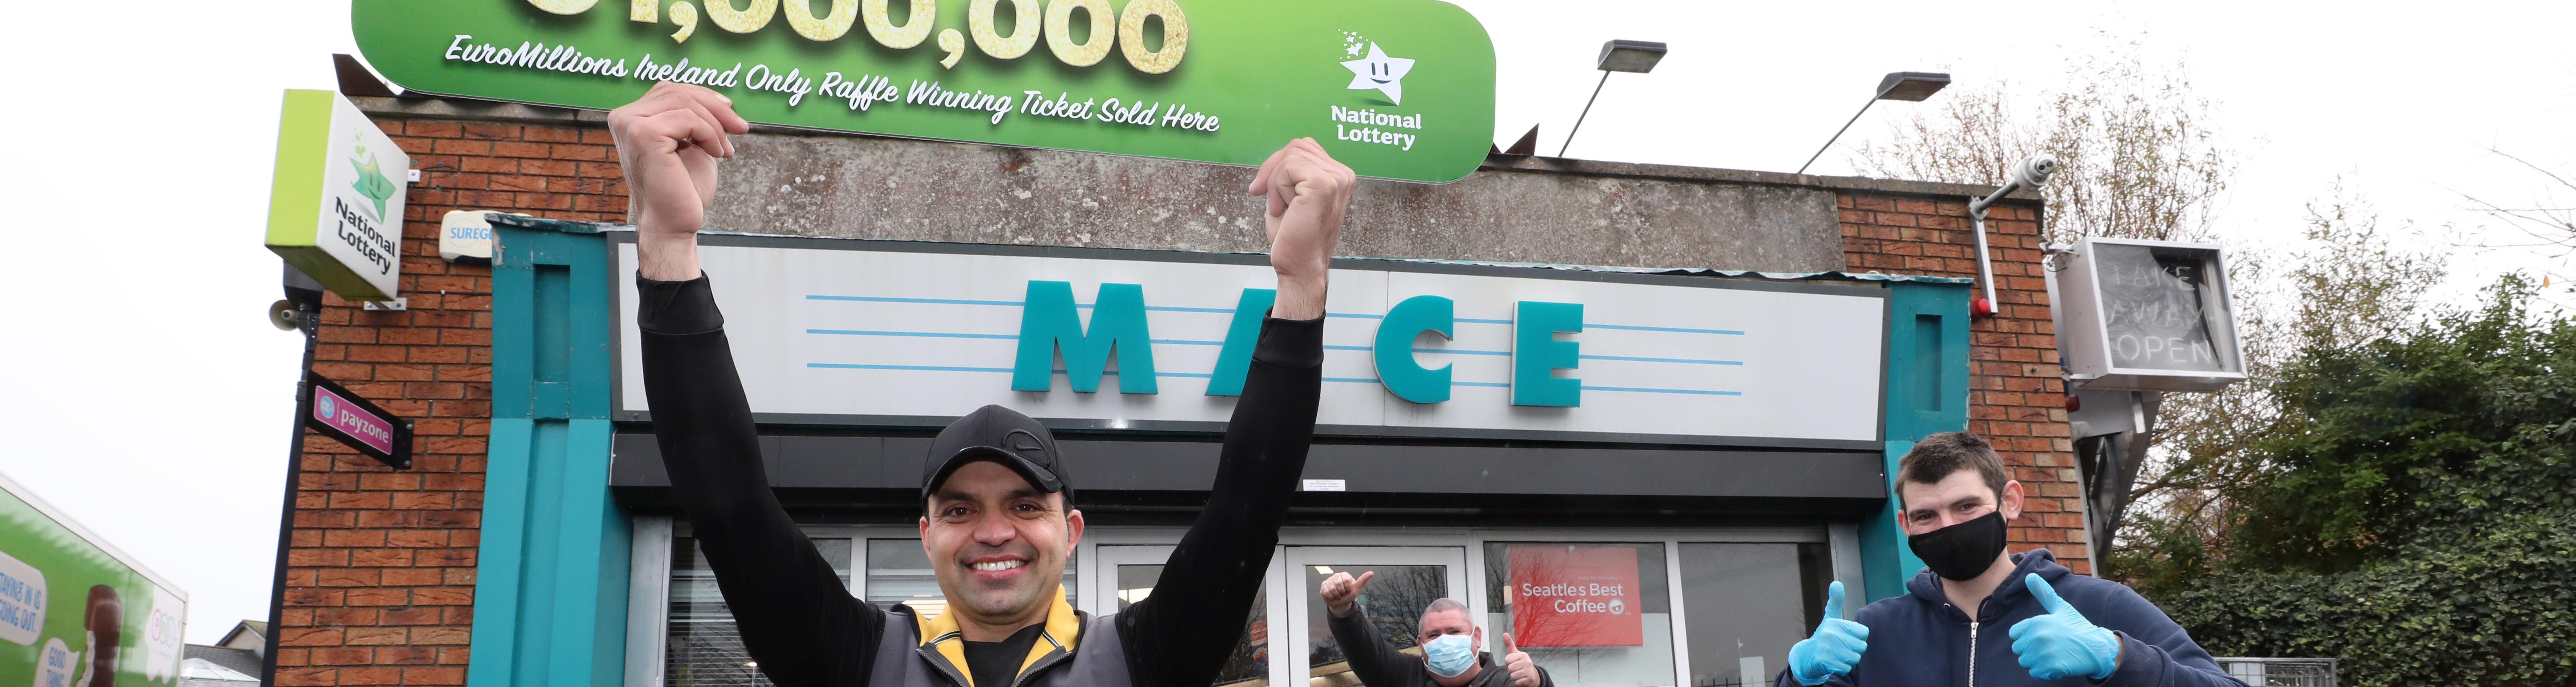 Mace Clondalkin Sold the 1st Fortnight of Fortunes EuroMillions Winning Ticket